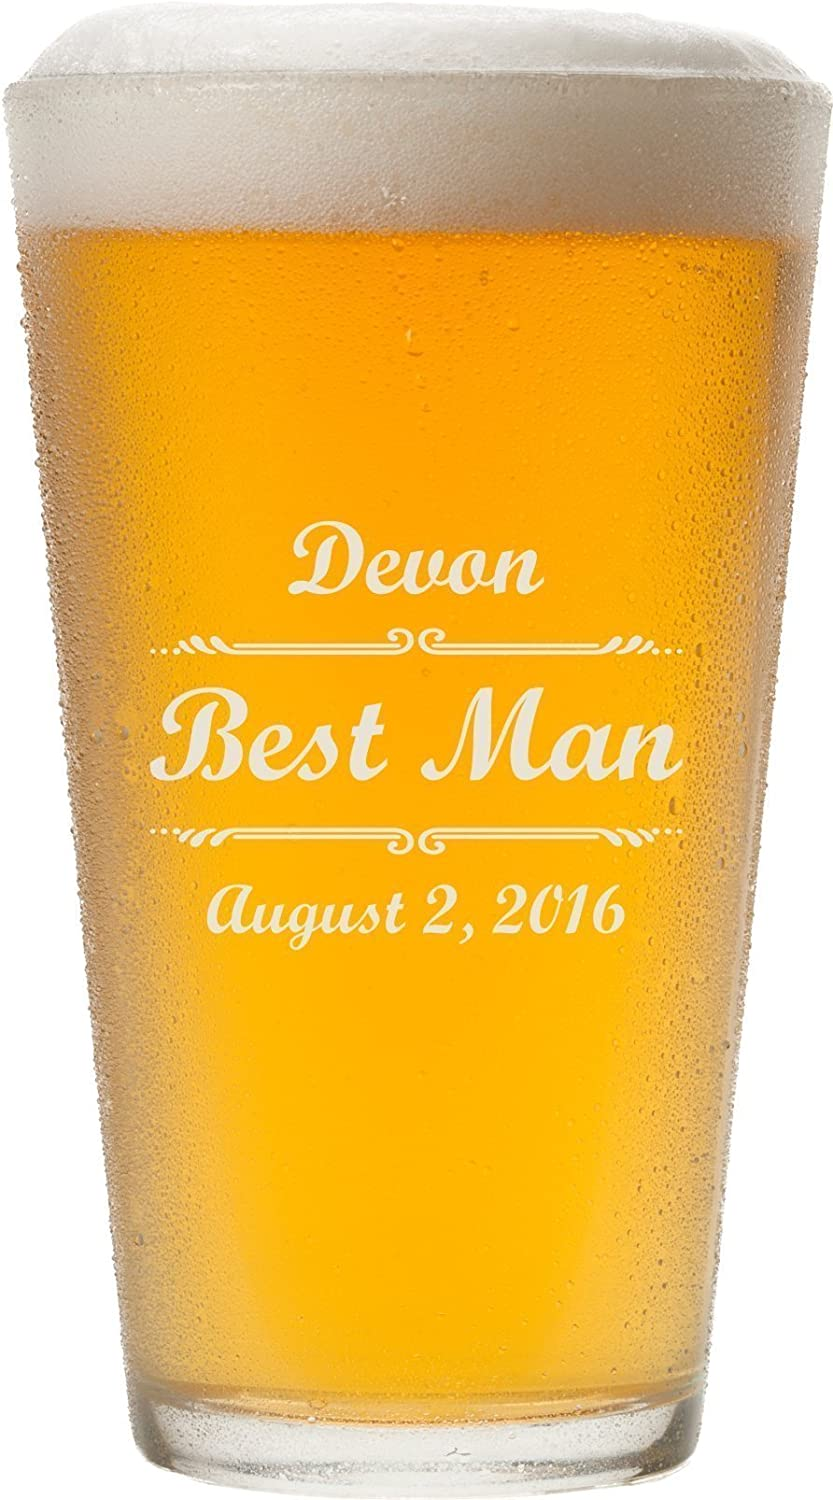 Personalized Pint Glasses,16 oz - Father's Day Gift, Anniversary Gift, Beer Lover's Gift for Him - PG02 16 oz - Father's Day Gift